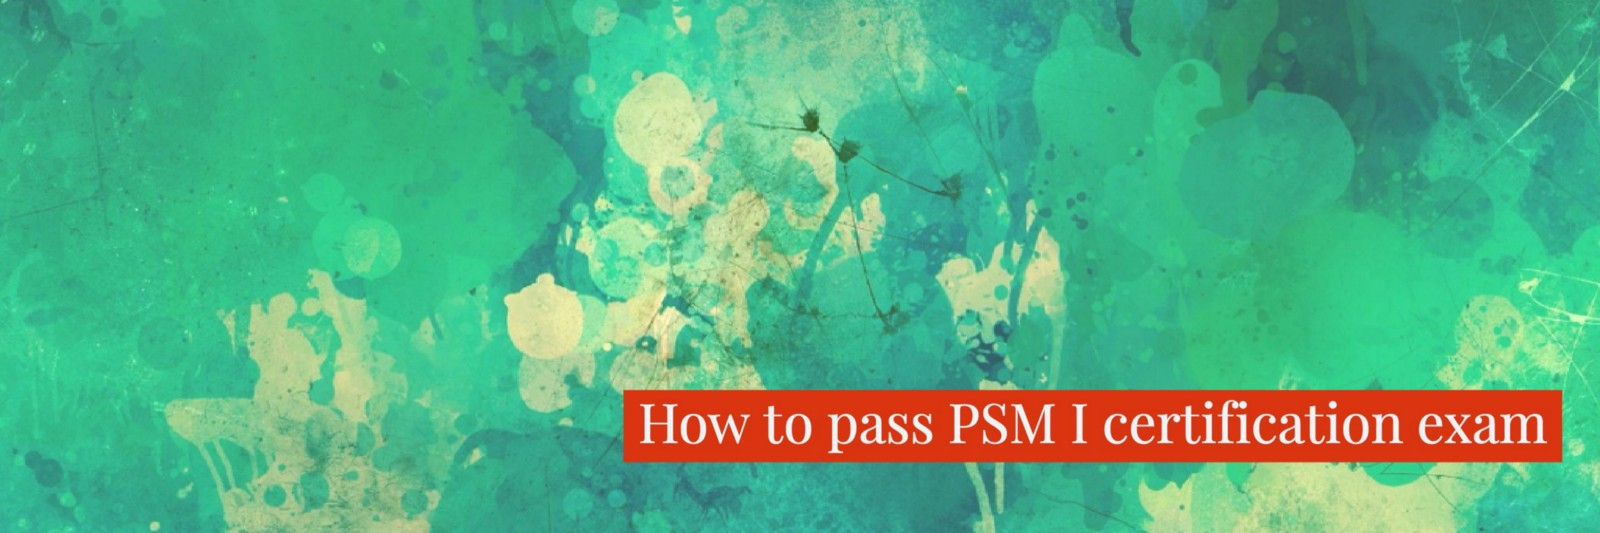 How To Pass Psm I Certification Exam Tales Of A Software Engineer